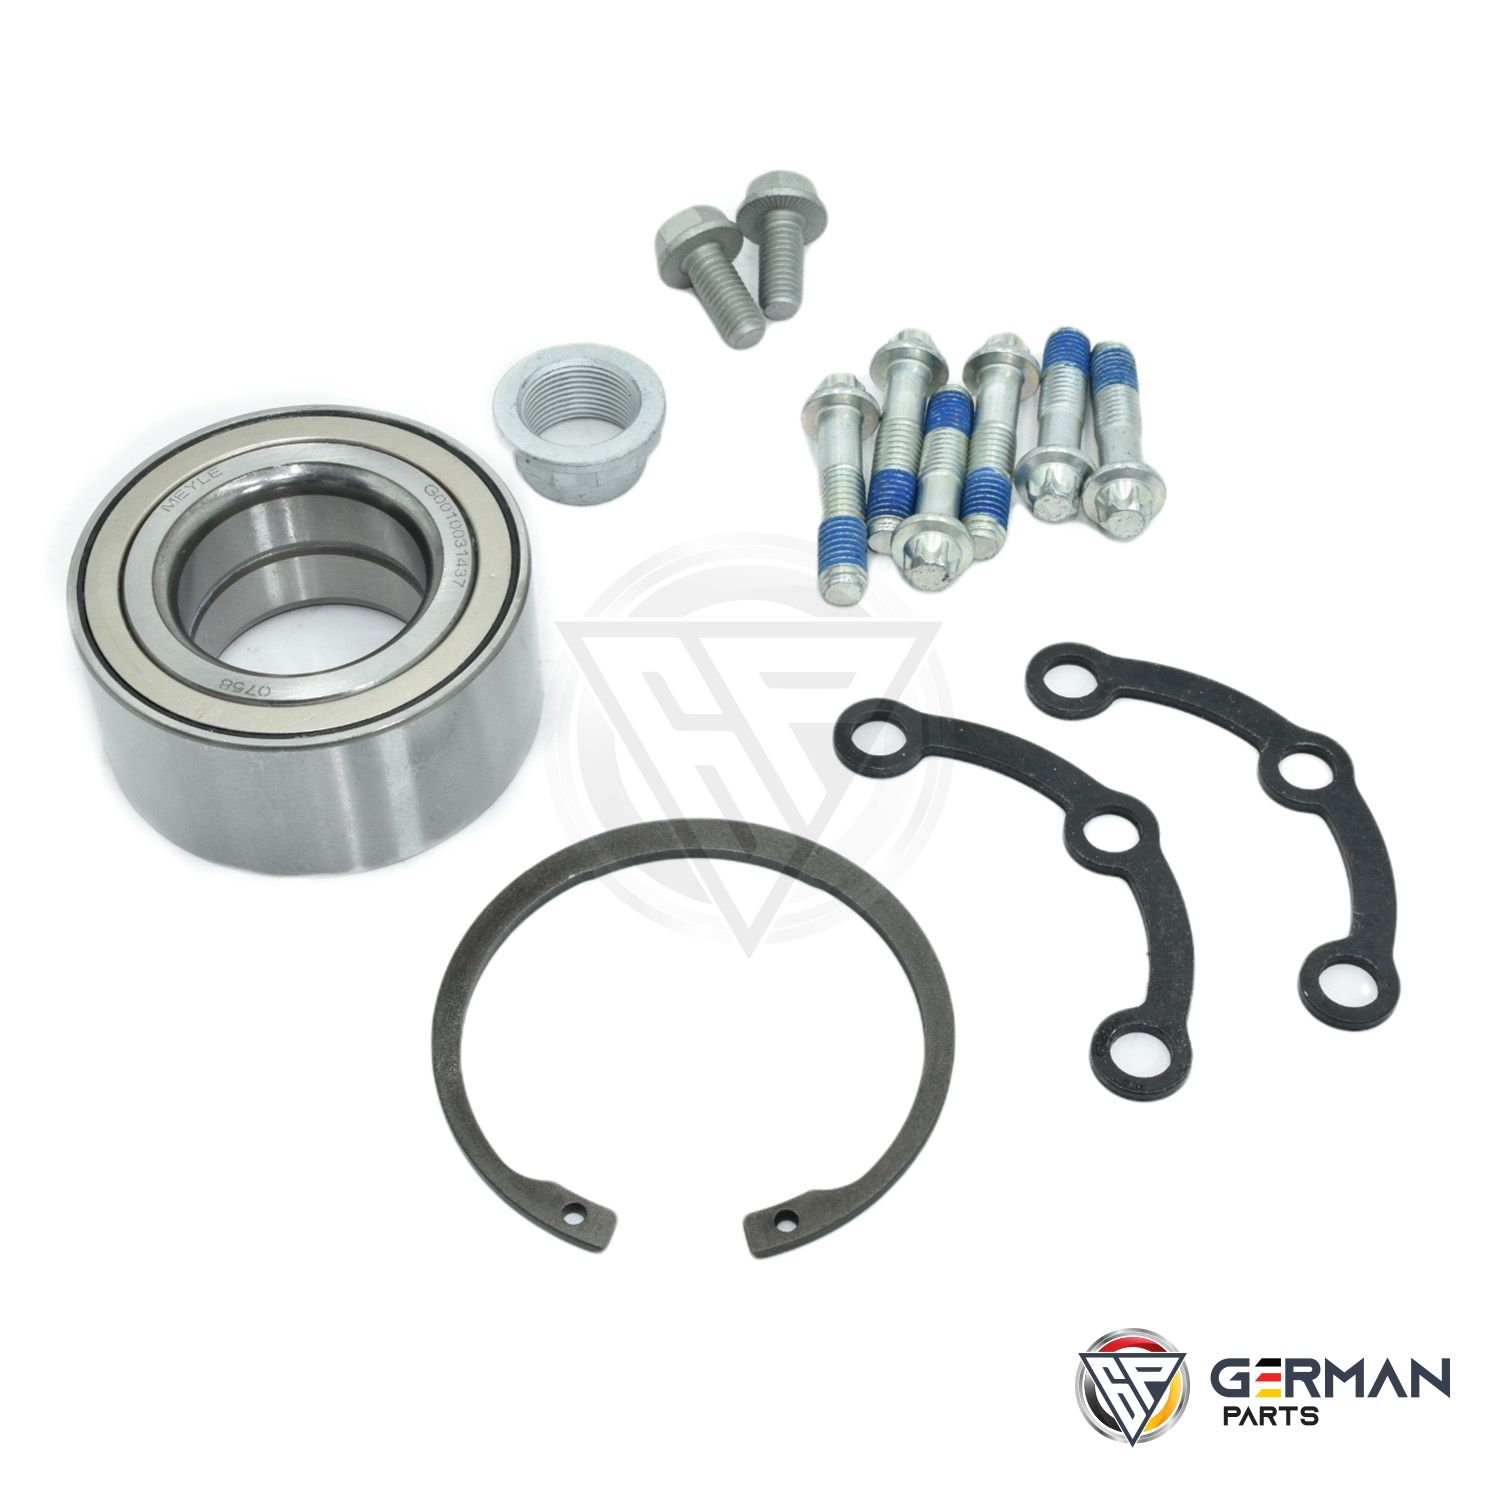 Buy Meyle Rear Wheel Bearing Kit 2029800116 - German Parts